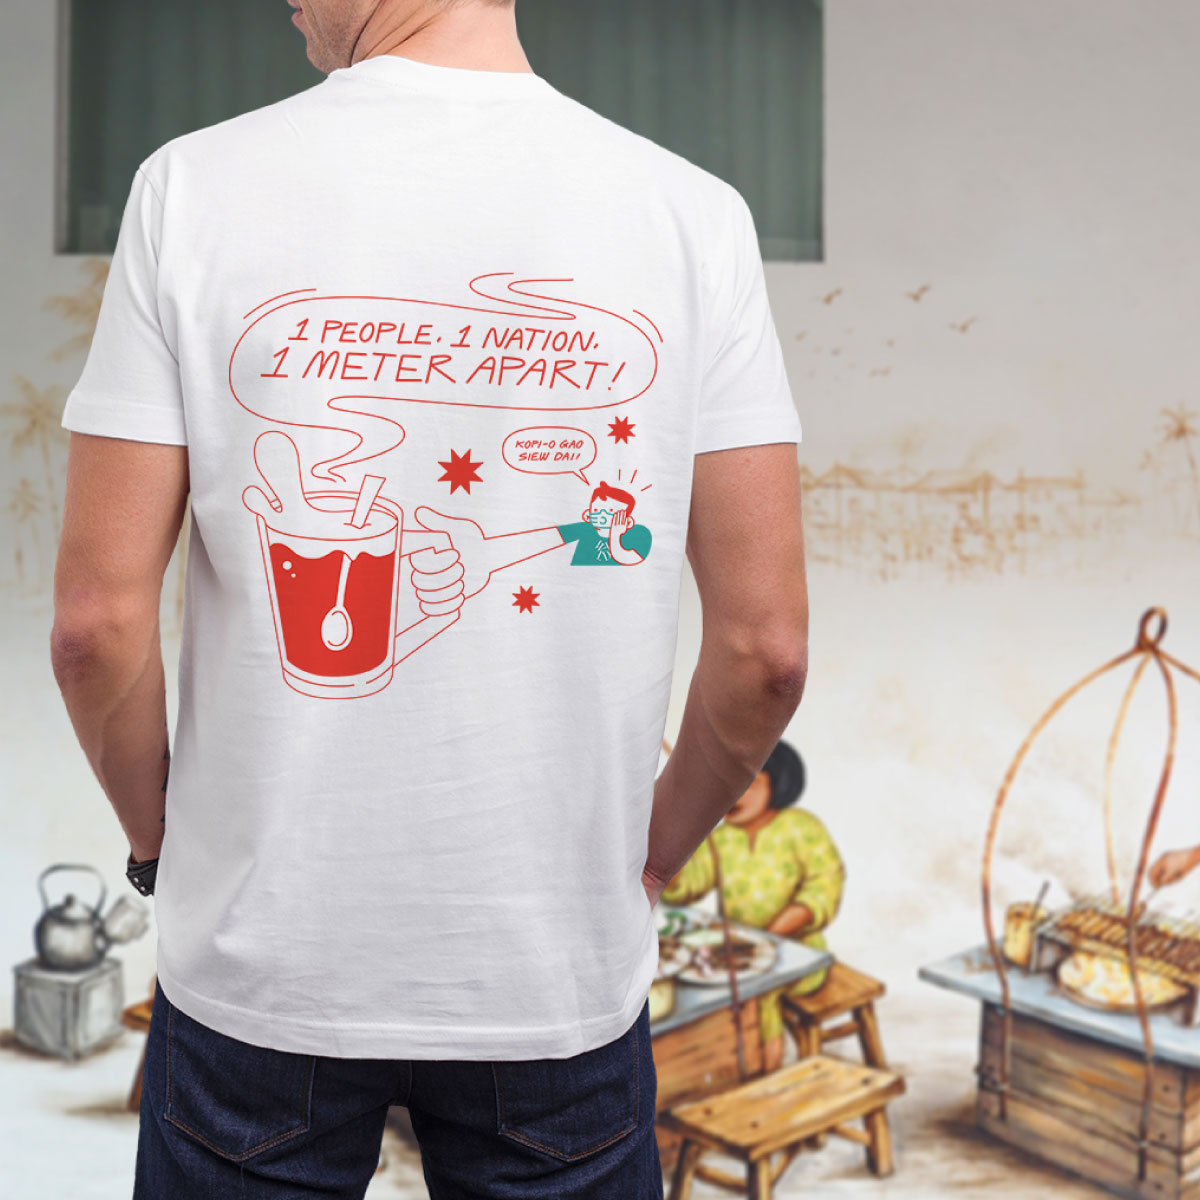 A model wears one out of four hawker-themed tee designs for sale to raise funds for a food charity organisation